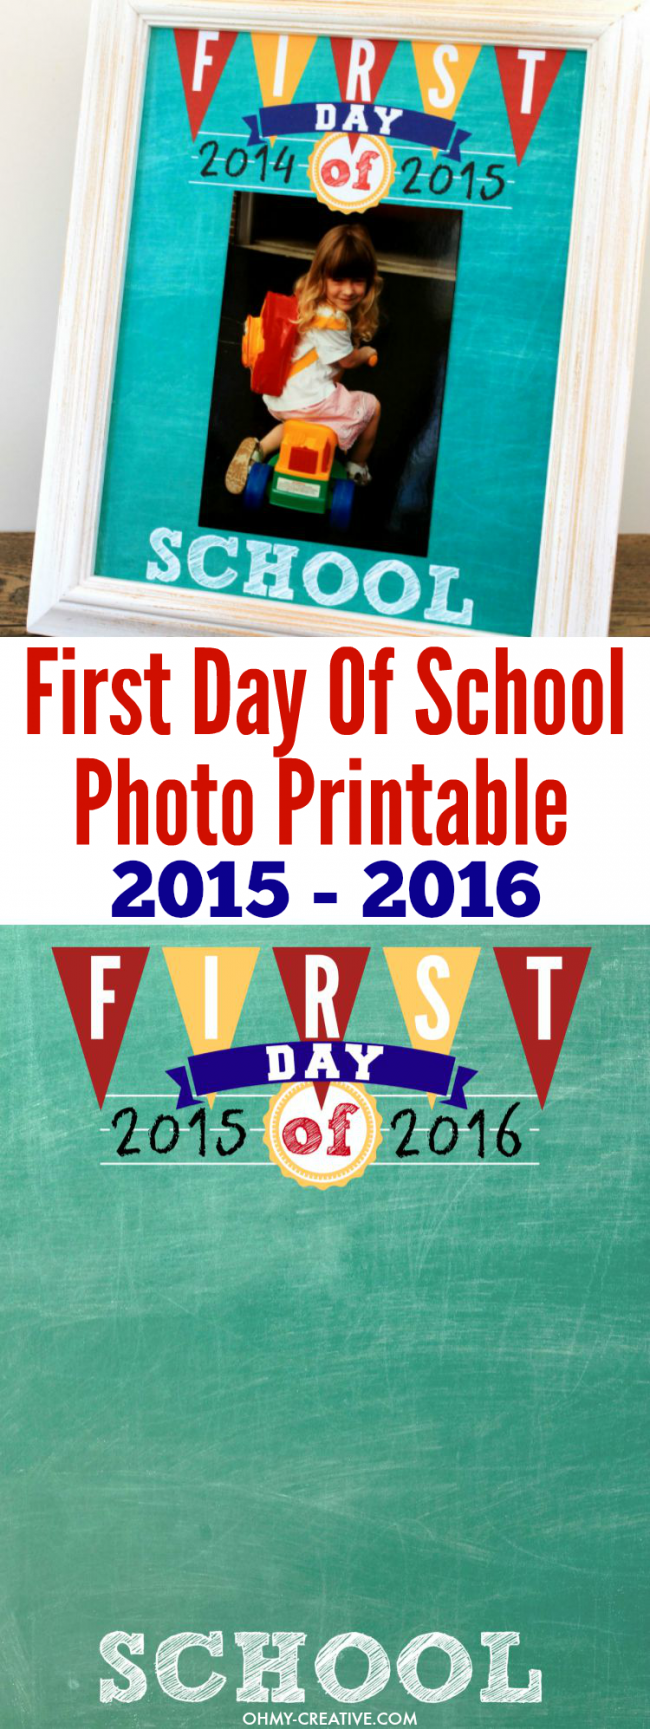 Display your kids First Day Of School Photos with this FREE Printable! Find school dates from 2014 - 2020. All years are available to print now! Can be added to a scrapbook after the school year is finished! | OHMY-CREATIVE.COM